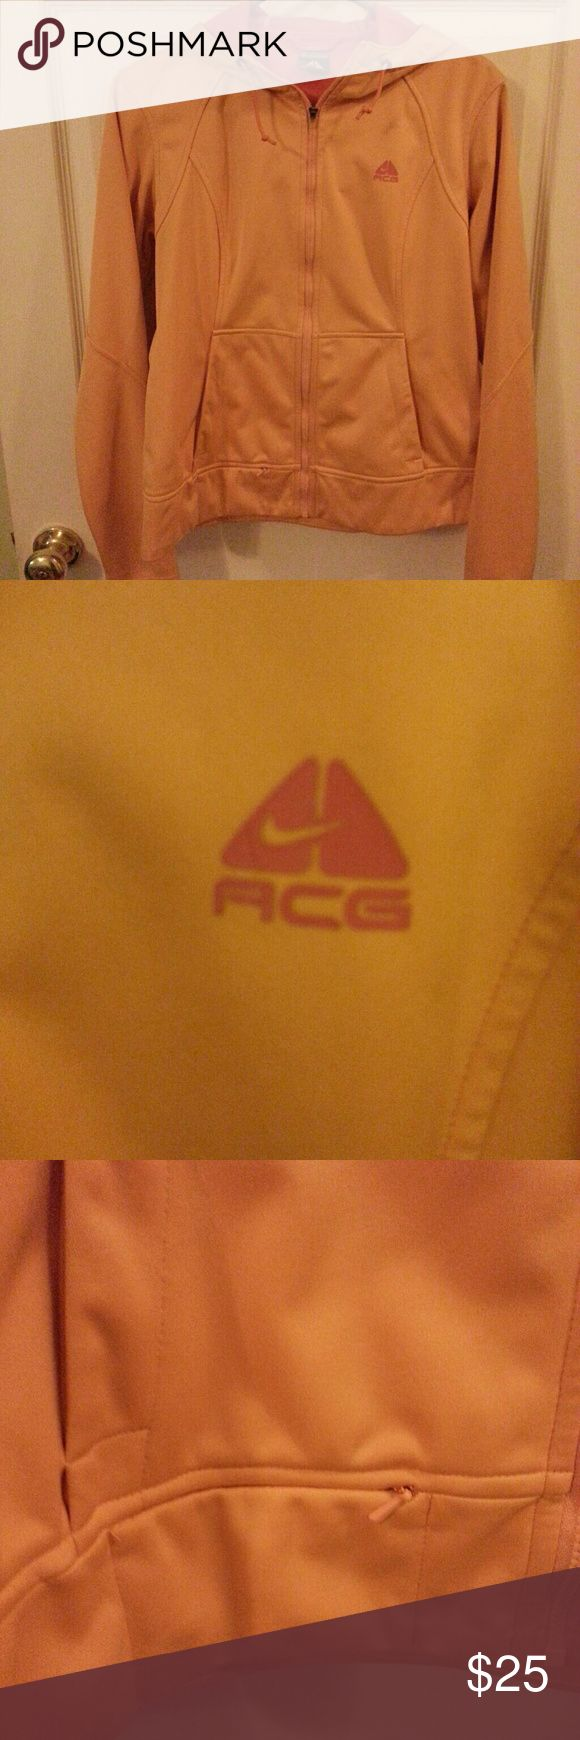 """Ladies jacket Ladies hooded Nike/ACG water resistant jacket with pink lining.  This jacket has a small """"key"""" pocket as well as thumbhole cuffs/sleeves.  It's in like new condition and only worn a few times. Nike/ACG Jackets & Coats Utility Jackets"""